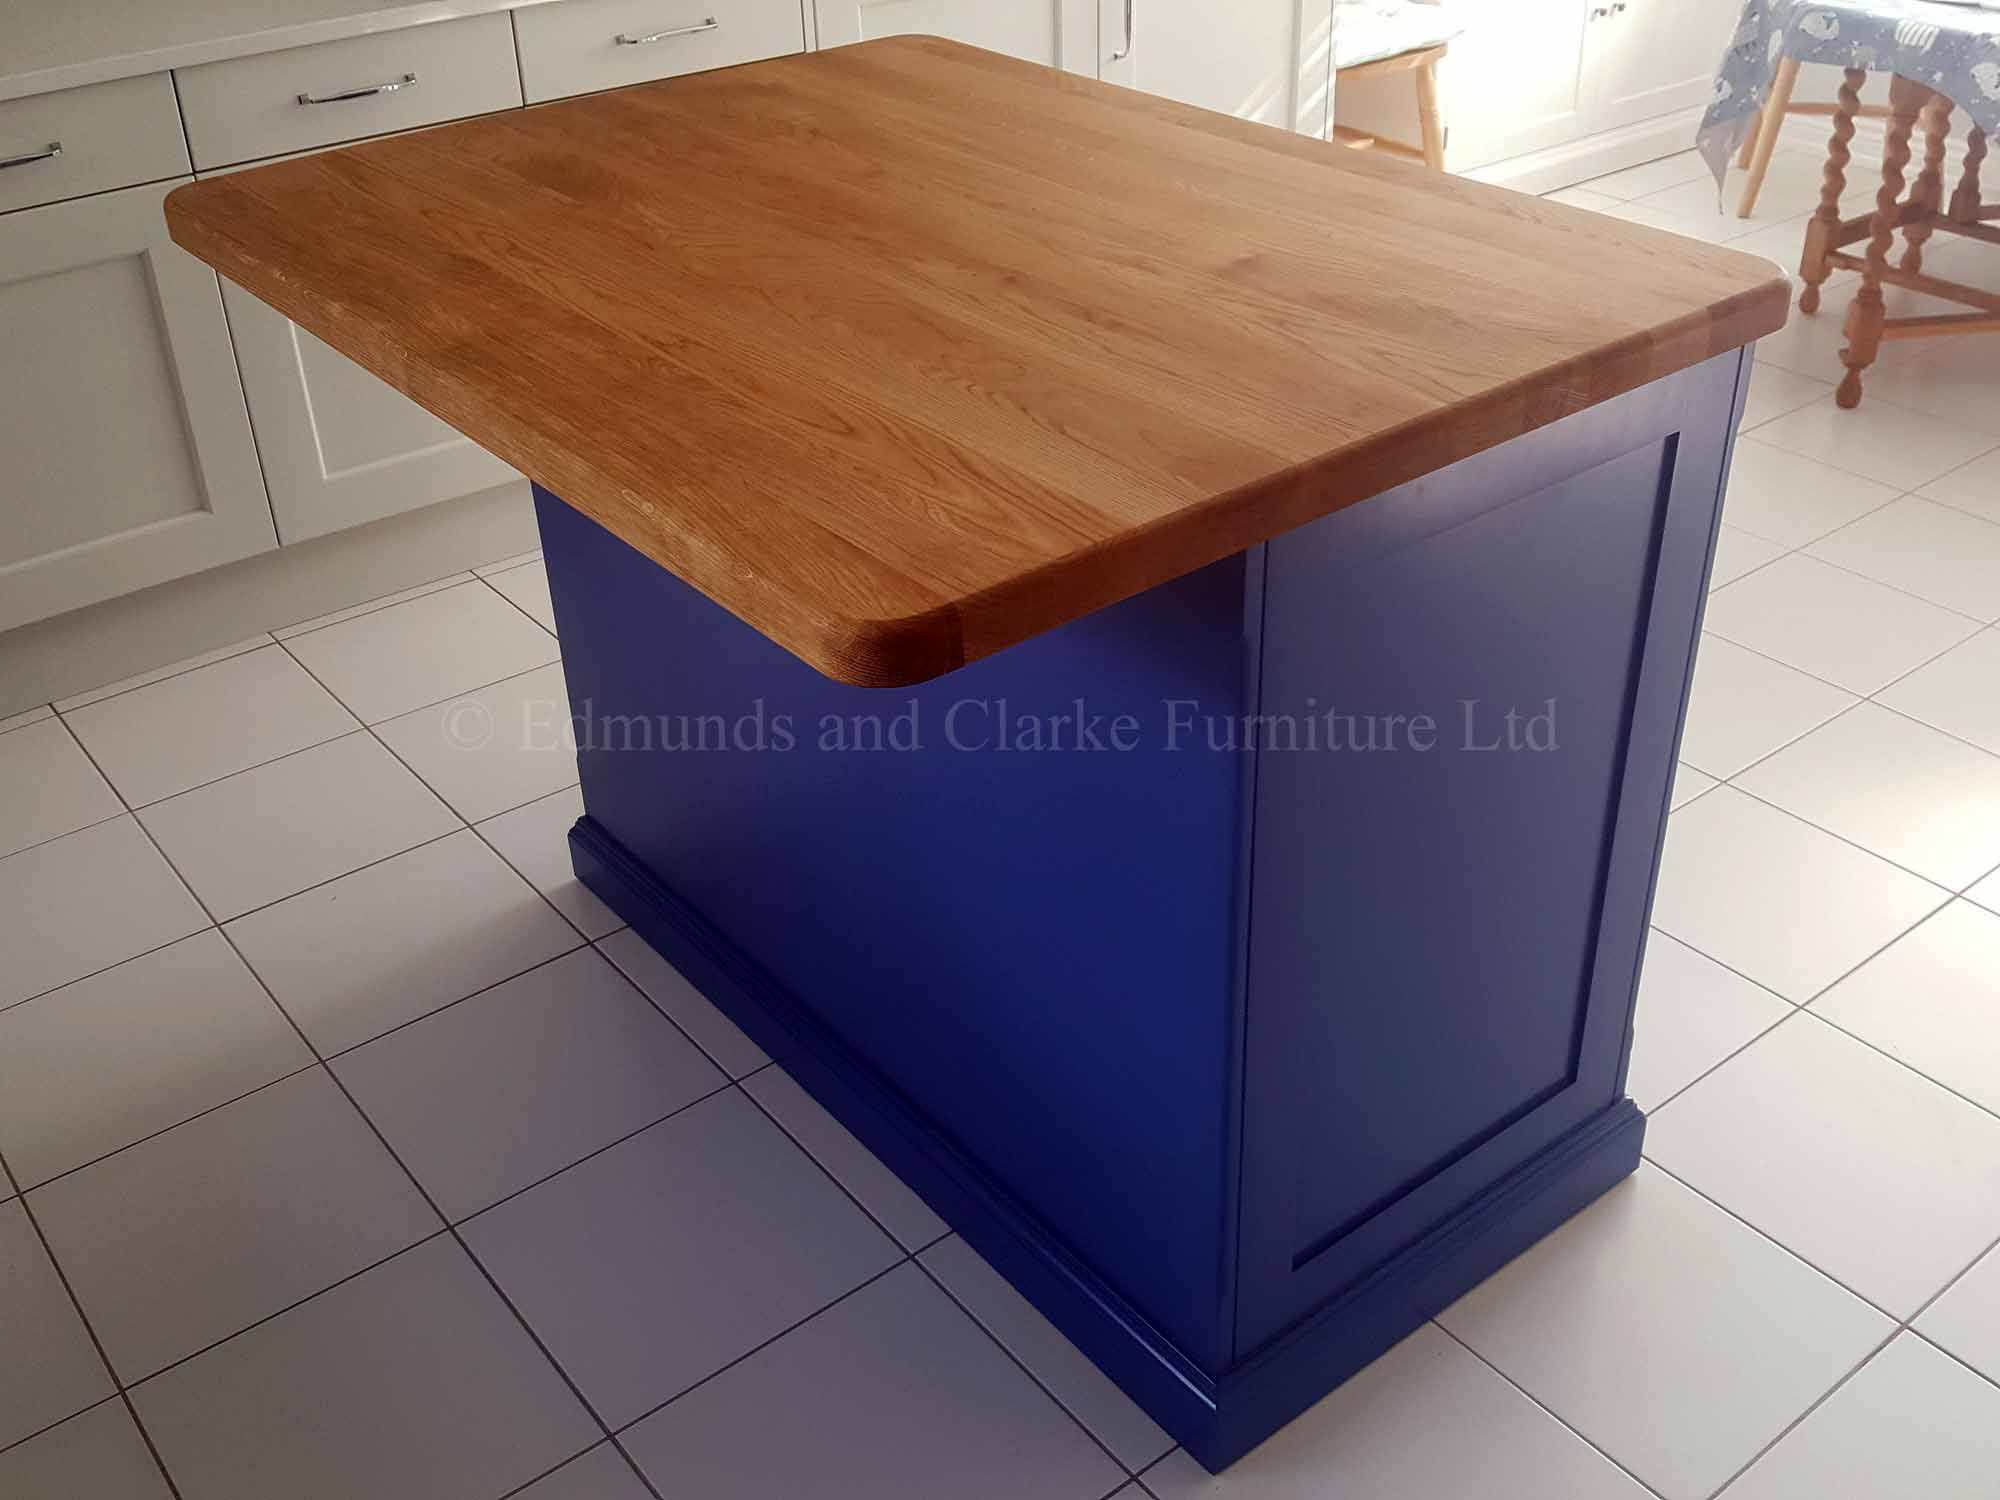 Edmunds painted 4ft x 3ft kitchen Island Colour Match. Solid oak top. Central shelves with 2 paneled doors and on other side a overhang for stools. EDM008